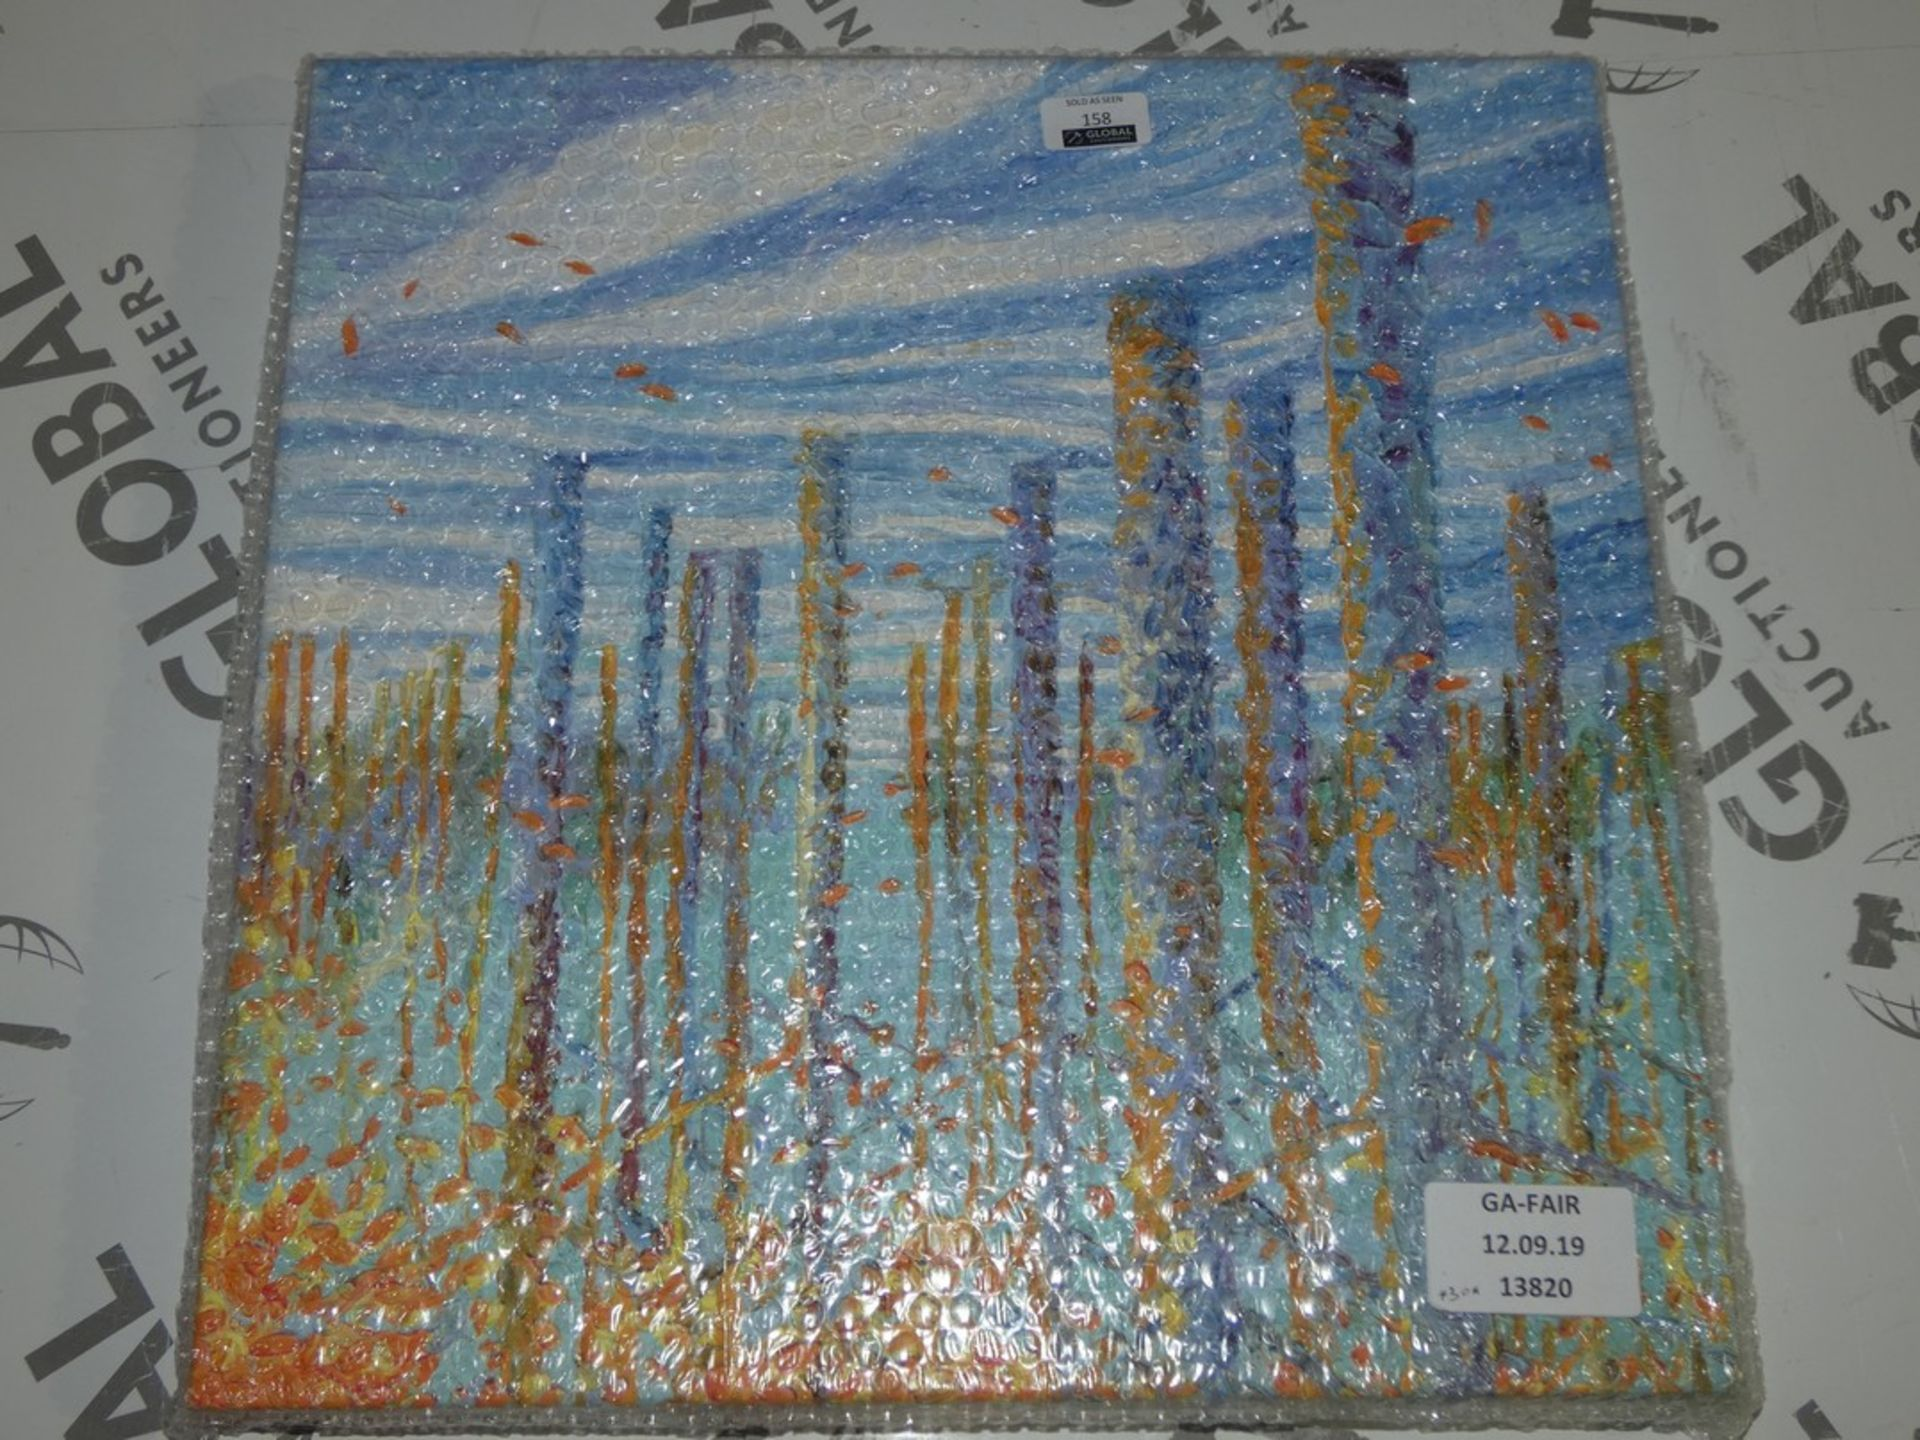 Lot 158 - Blue Abstract Canvas Wall Art Picture RRP £50 (13820) (Public Viewing and Appraisals Available)